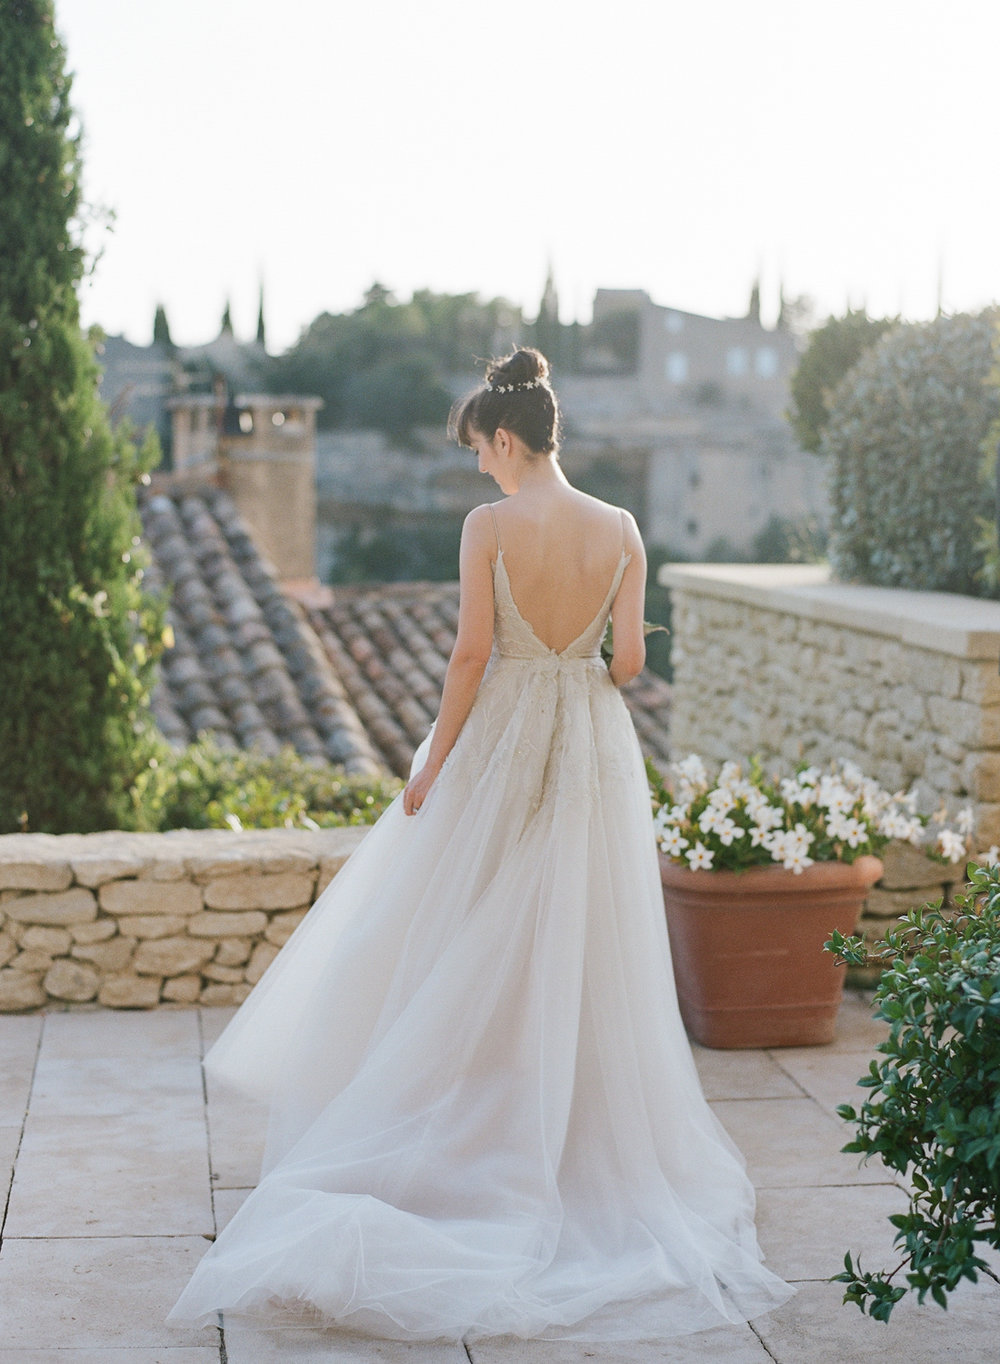 Bride stands on the patio of a chateau in Gordes, France at sunset; Sylvie Gil Photography